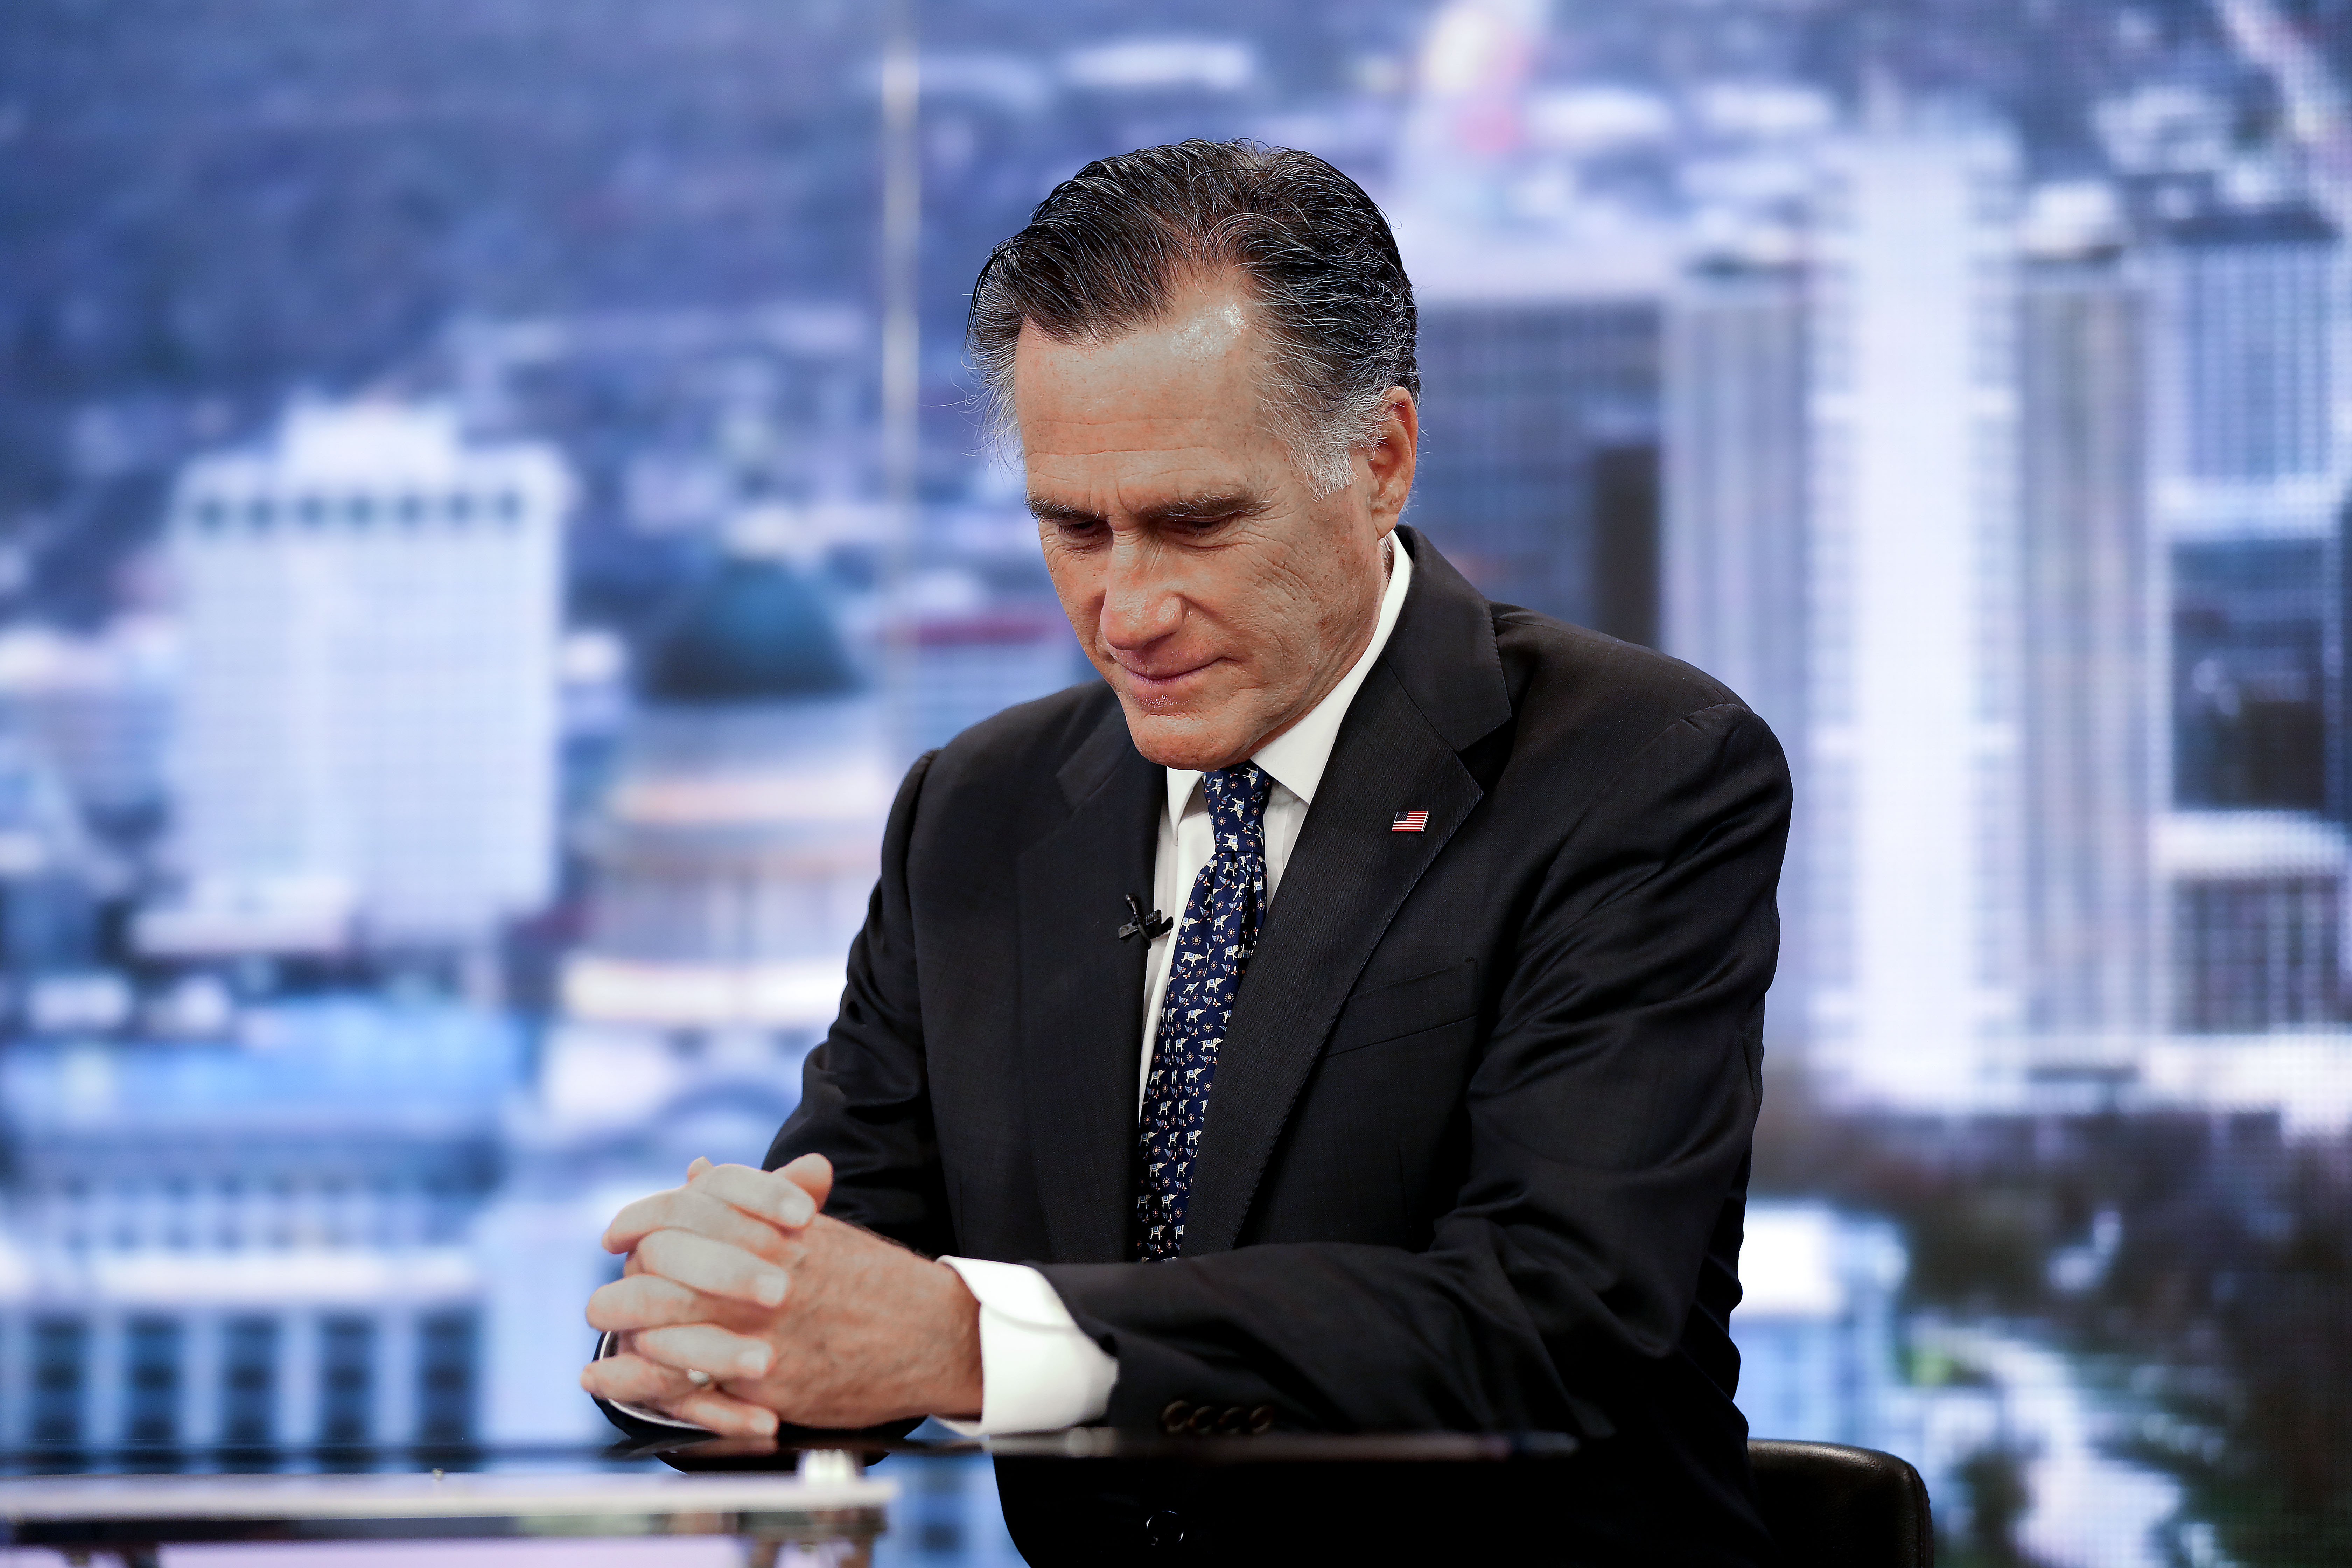 Sen. Mitt Romney, R-Utah, pauses during an interview with KSL's Doug Wright in Salt Lake City on Thursday, Feb. 6, 2020, the day after he voted to convict President Donald Trump on one impeachment count.